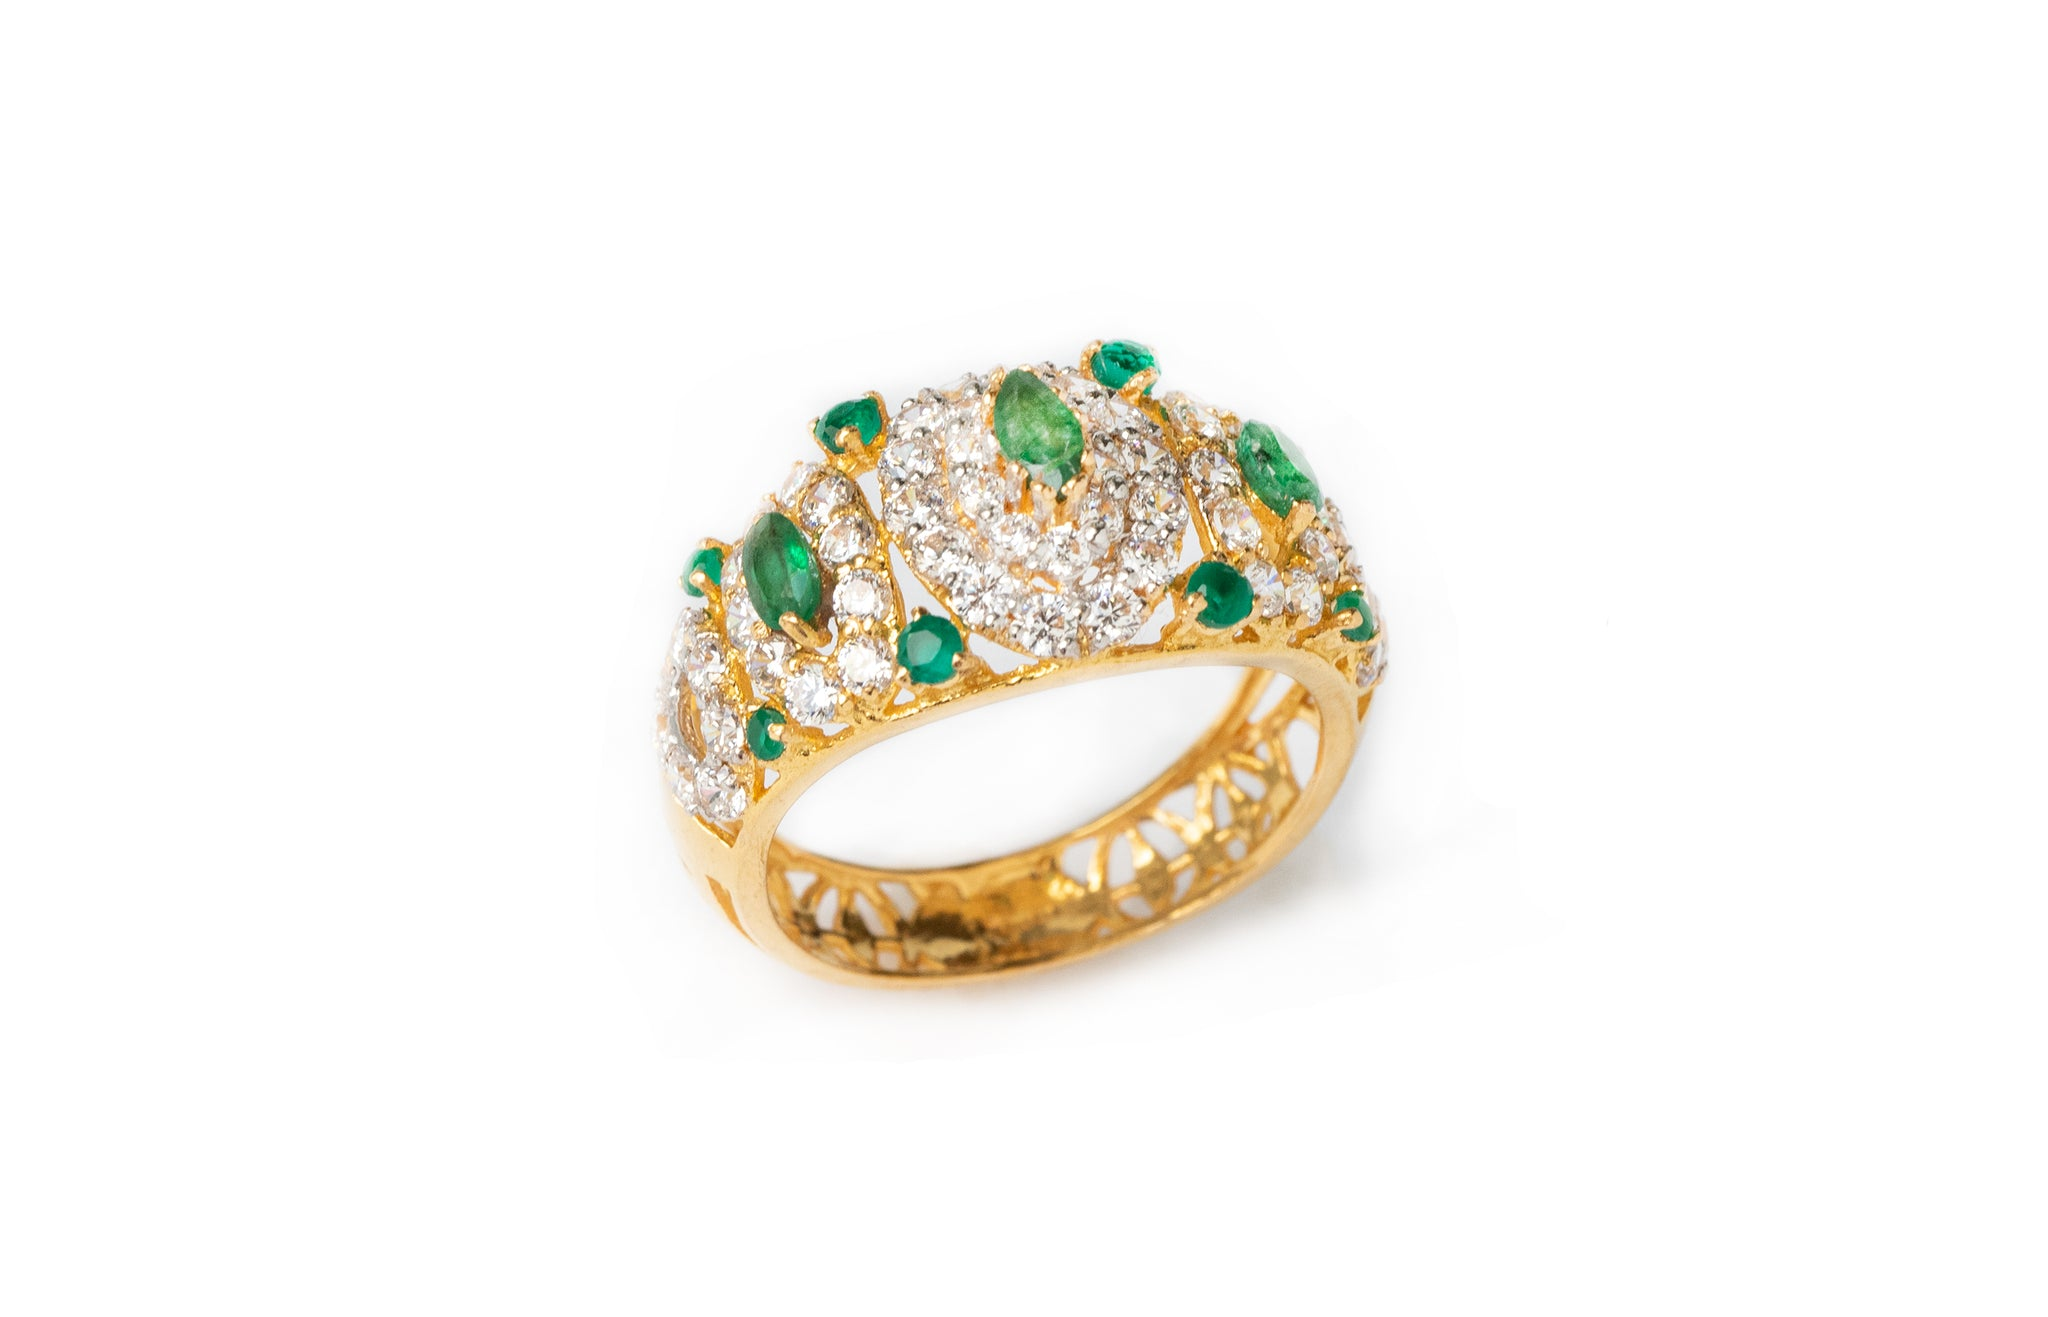 22ct Gold Dress Ring set with green and white Cubic Zirconias (5.3g) LR-7802